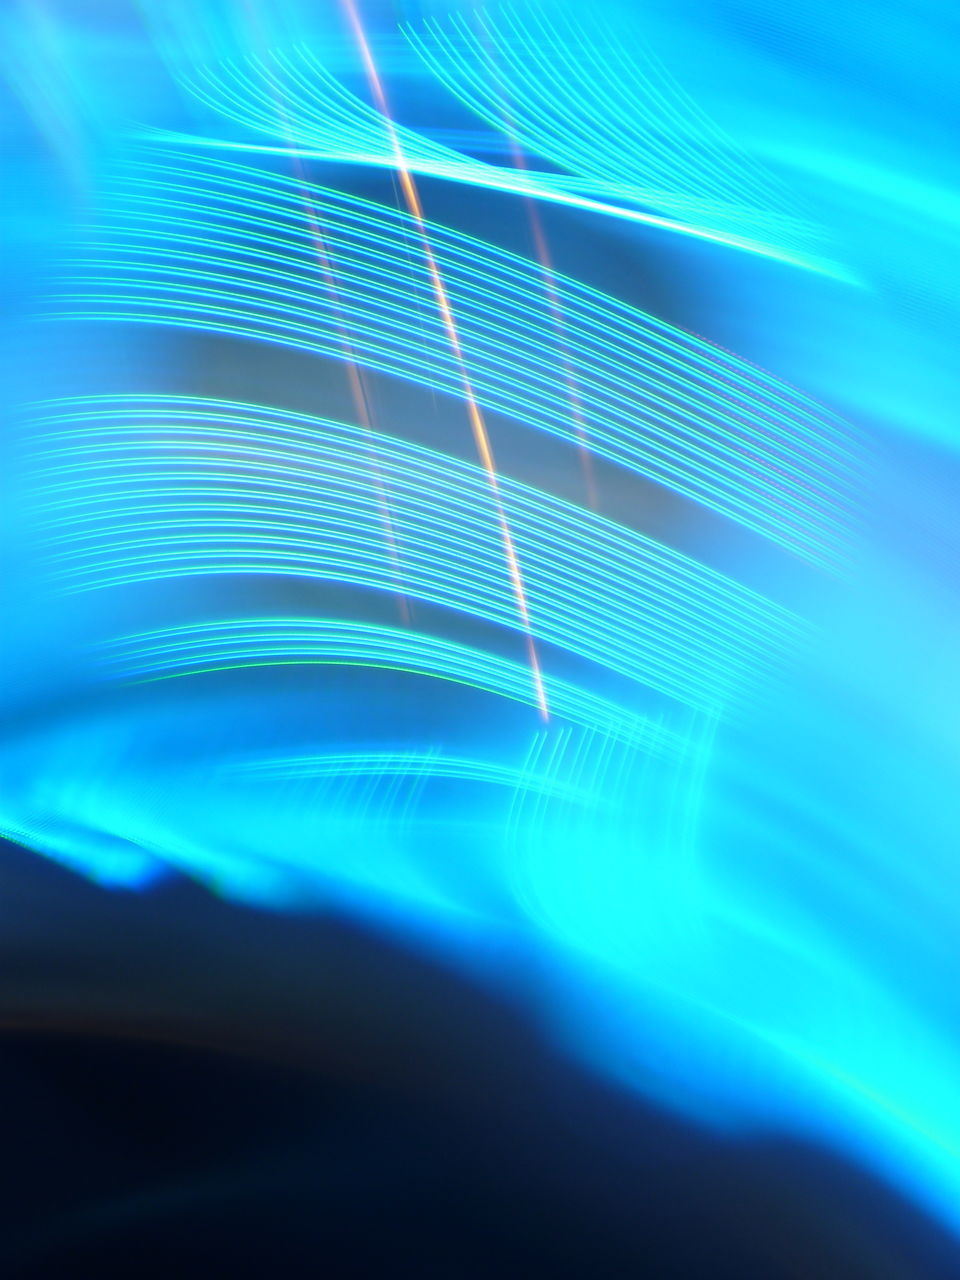 technology, blue, no people, close-up, abstract, connection, studio shot, fuel and power generation, pattern, speed, communication, illuminated, fiber optic, electricity, complexity, futuristic, internet, indoors, day